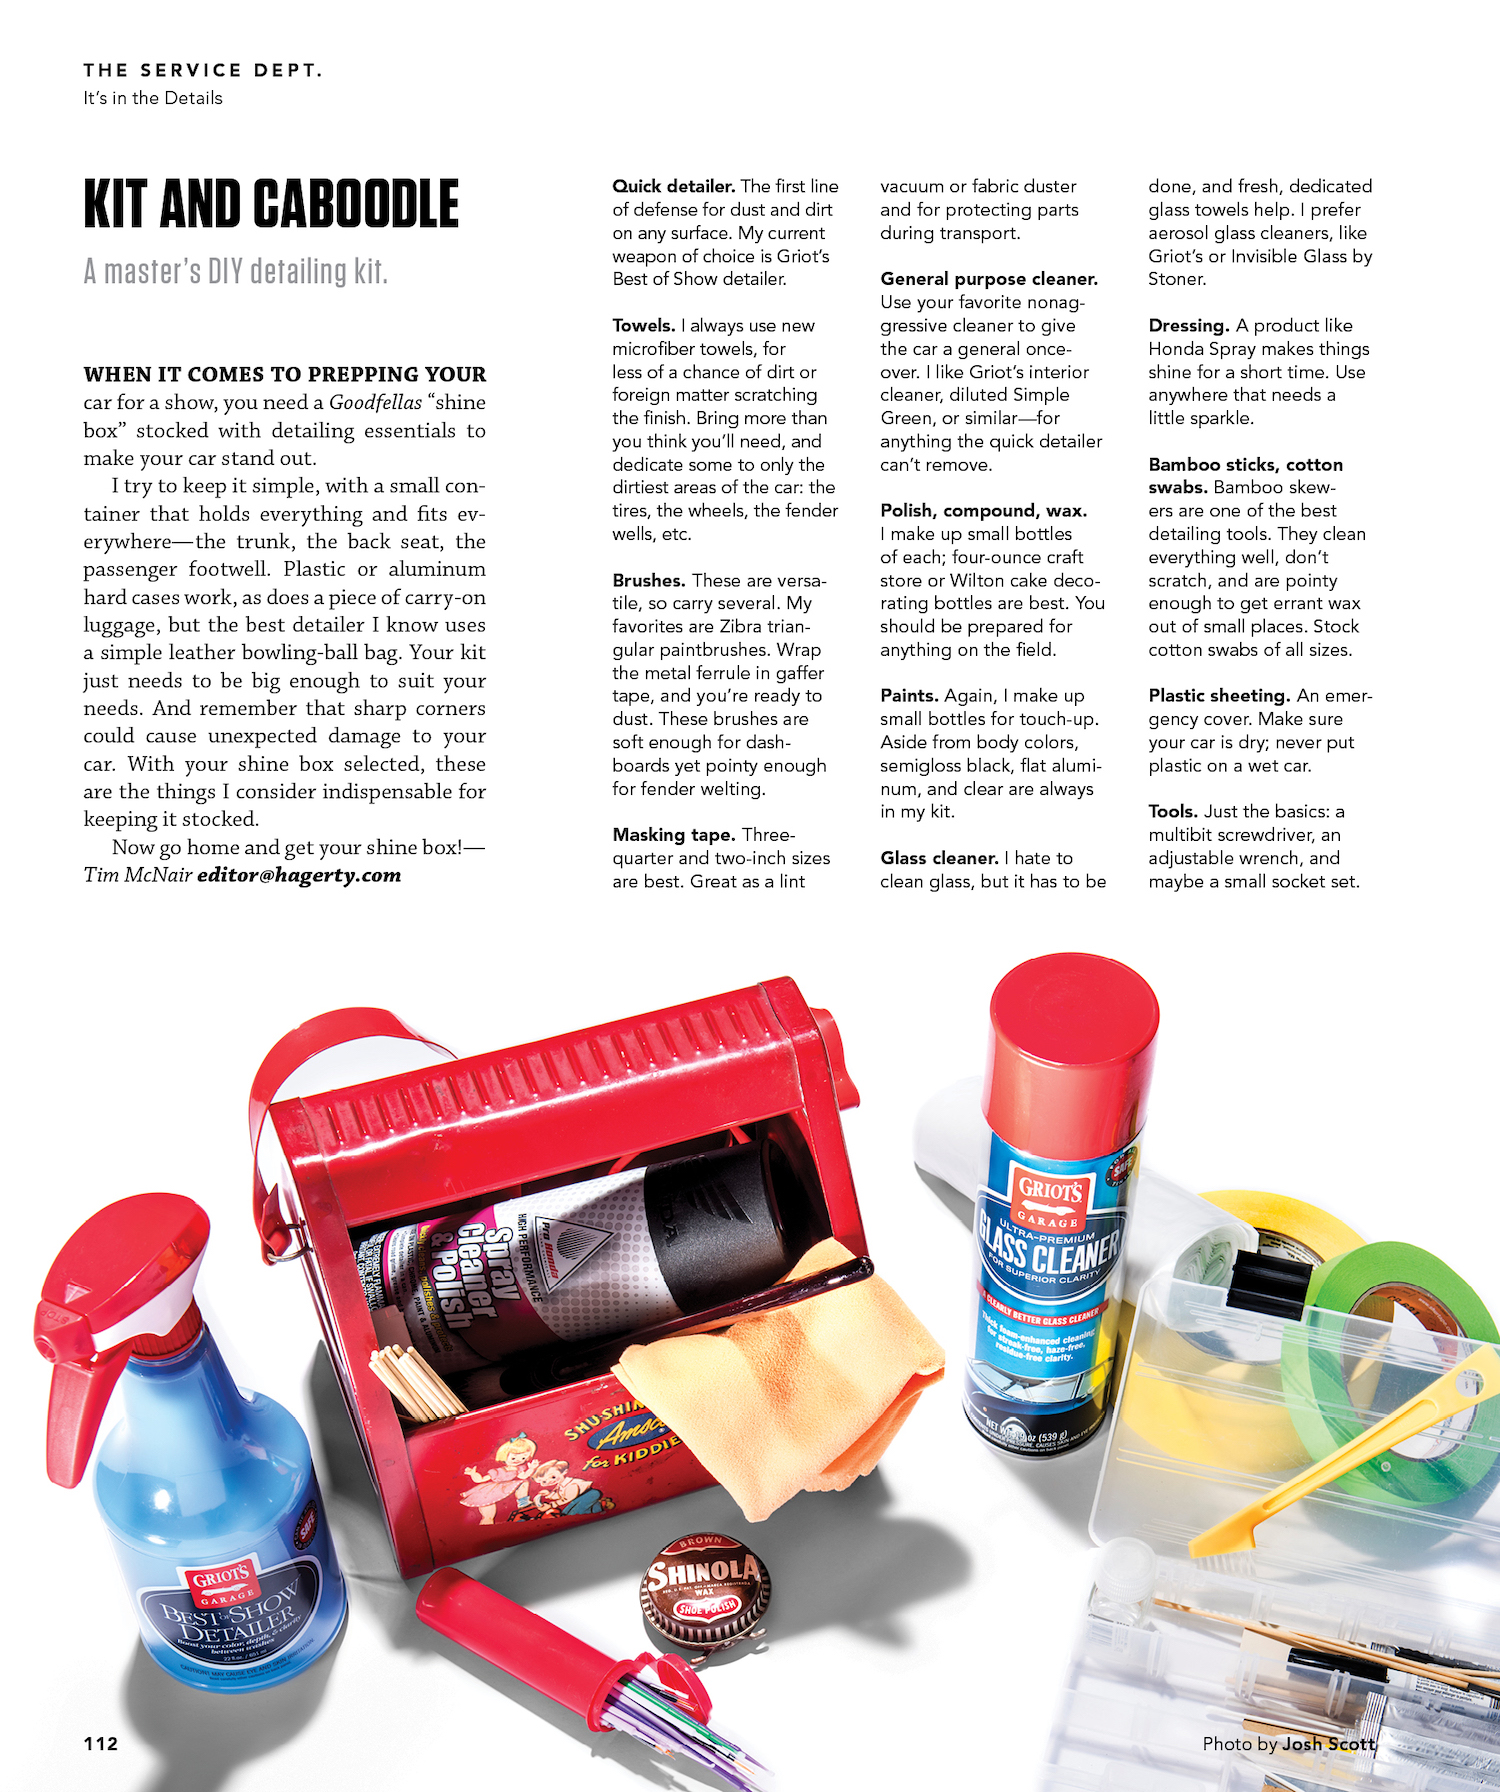 hagerty magazine kit and caboodle story art